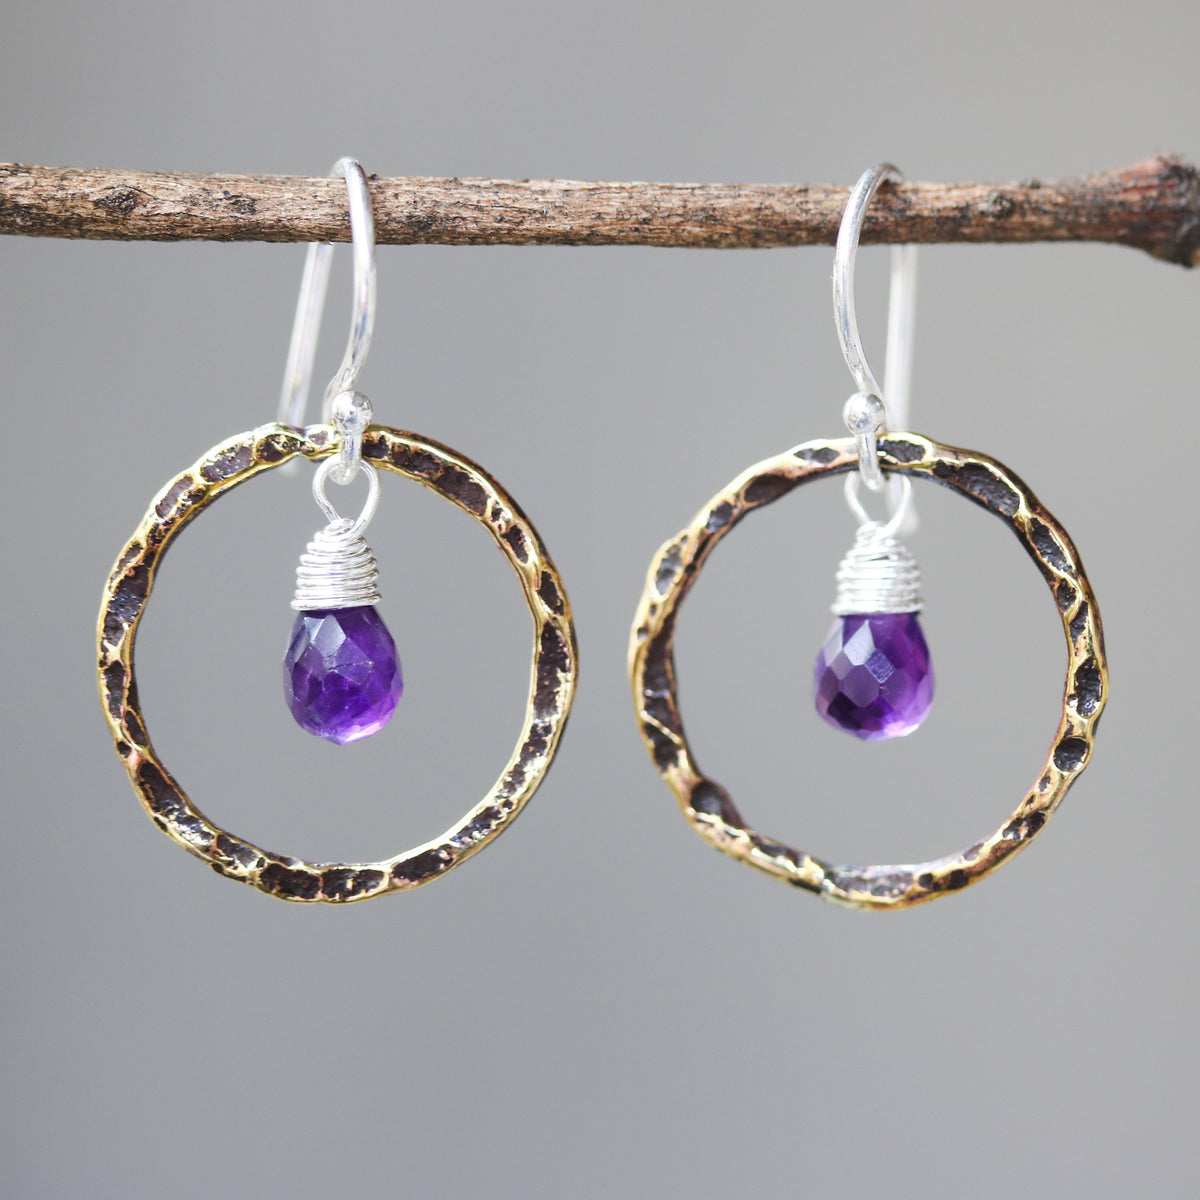 Amethyst earrings and oxidized brass circle shape in hammer textured on sterling silver hook style(FBA)